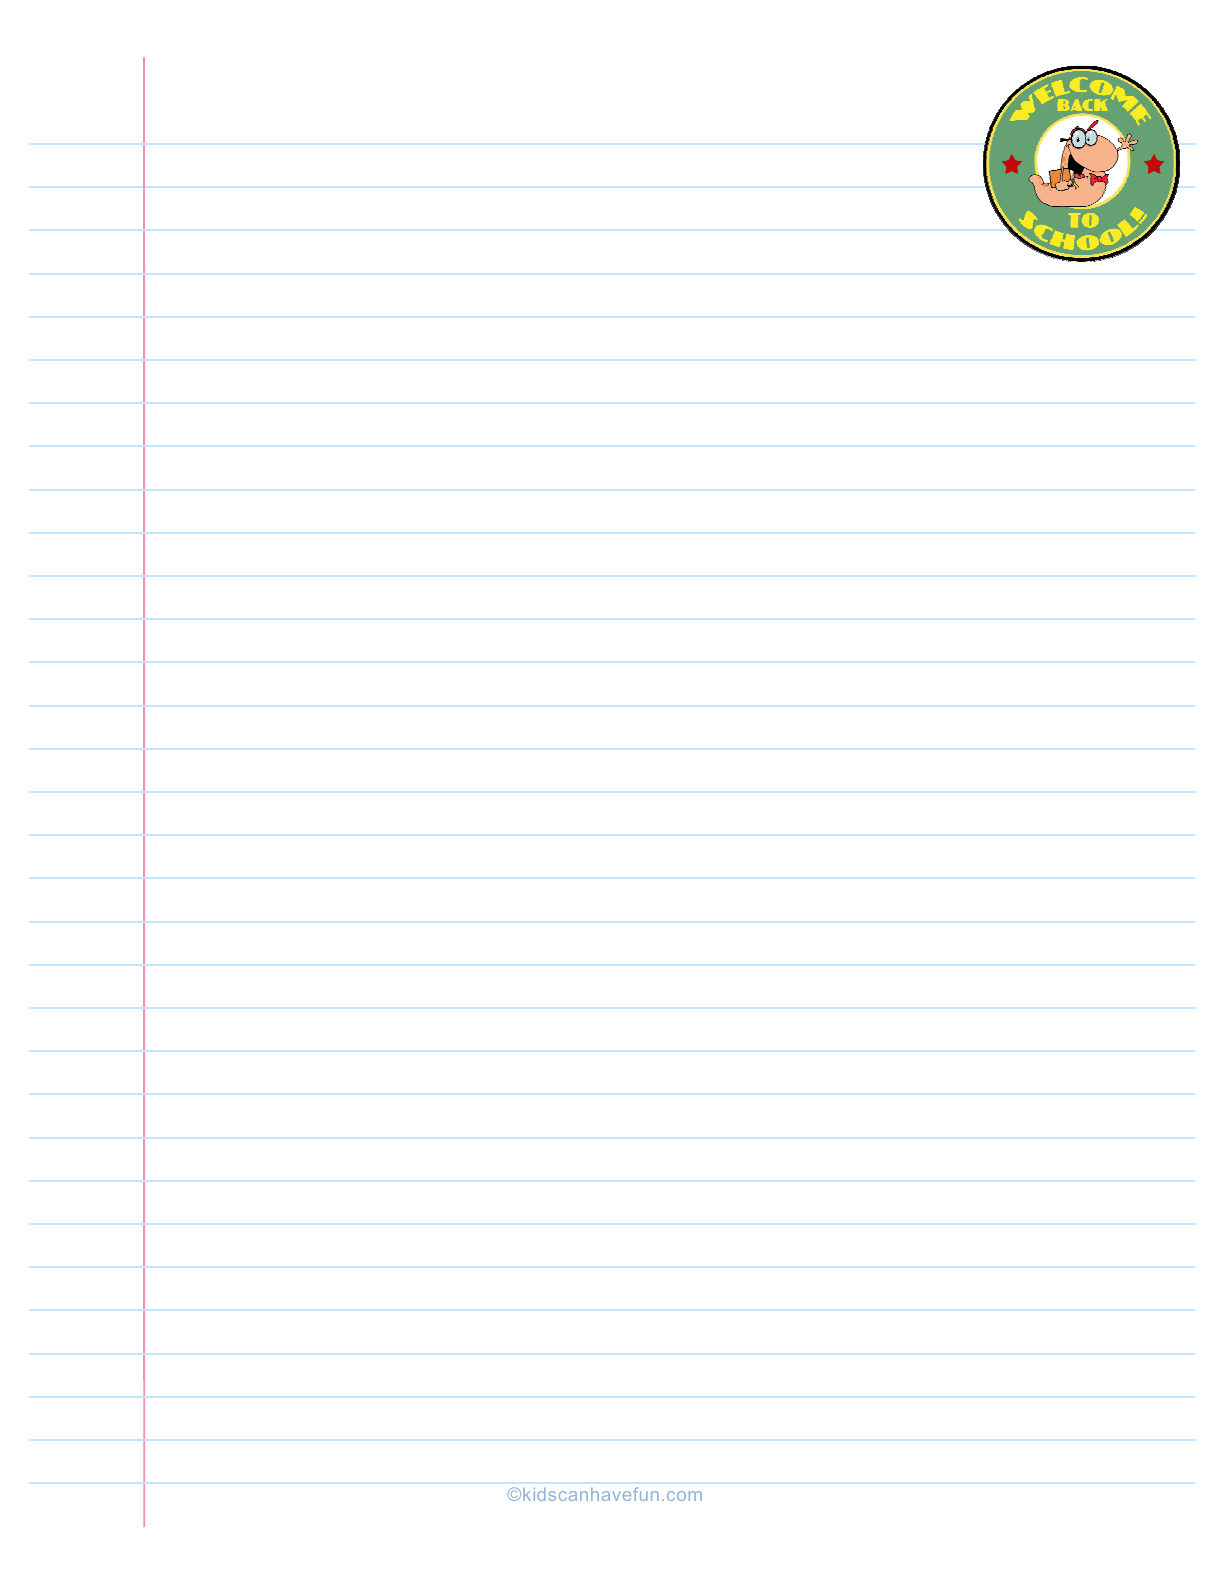 Welcome Back To School Ruled Paper With Bookworm